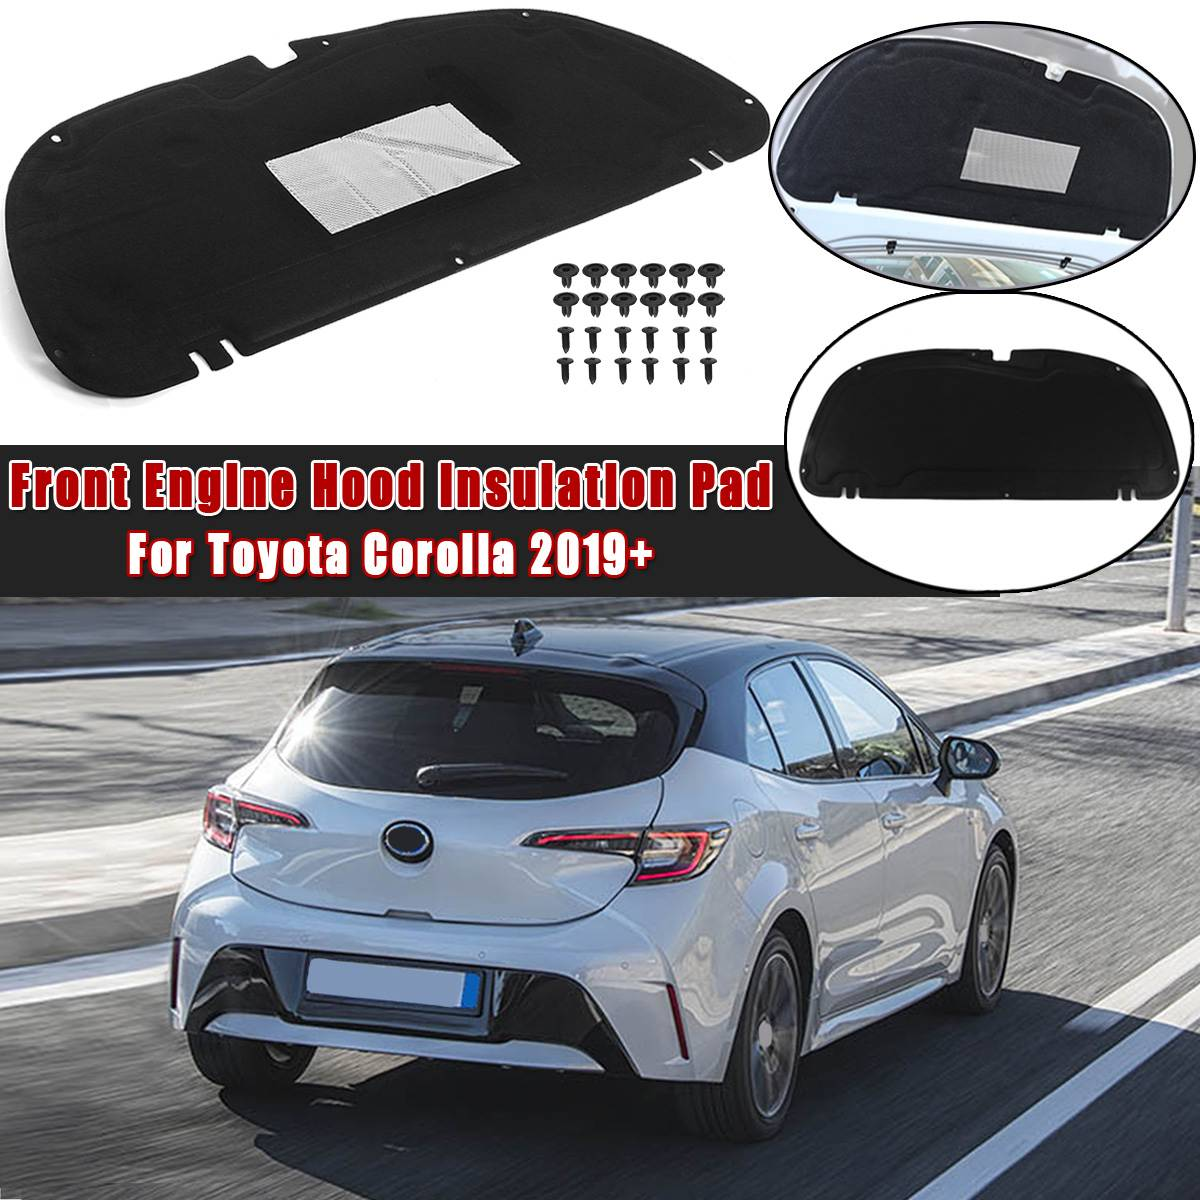 Car Hood Engine Firewall Mat Pad Cover Deadener Interior Heat Sound Insulation Cotton For TOYOTA Corolla 2019 2020+ Car Accessor